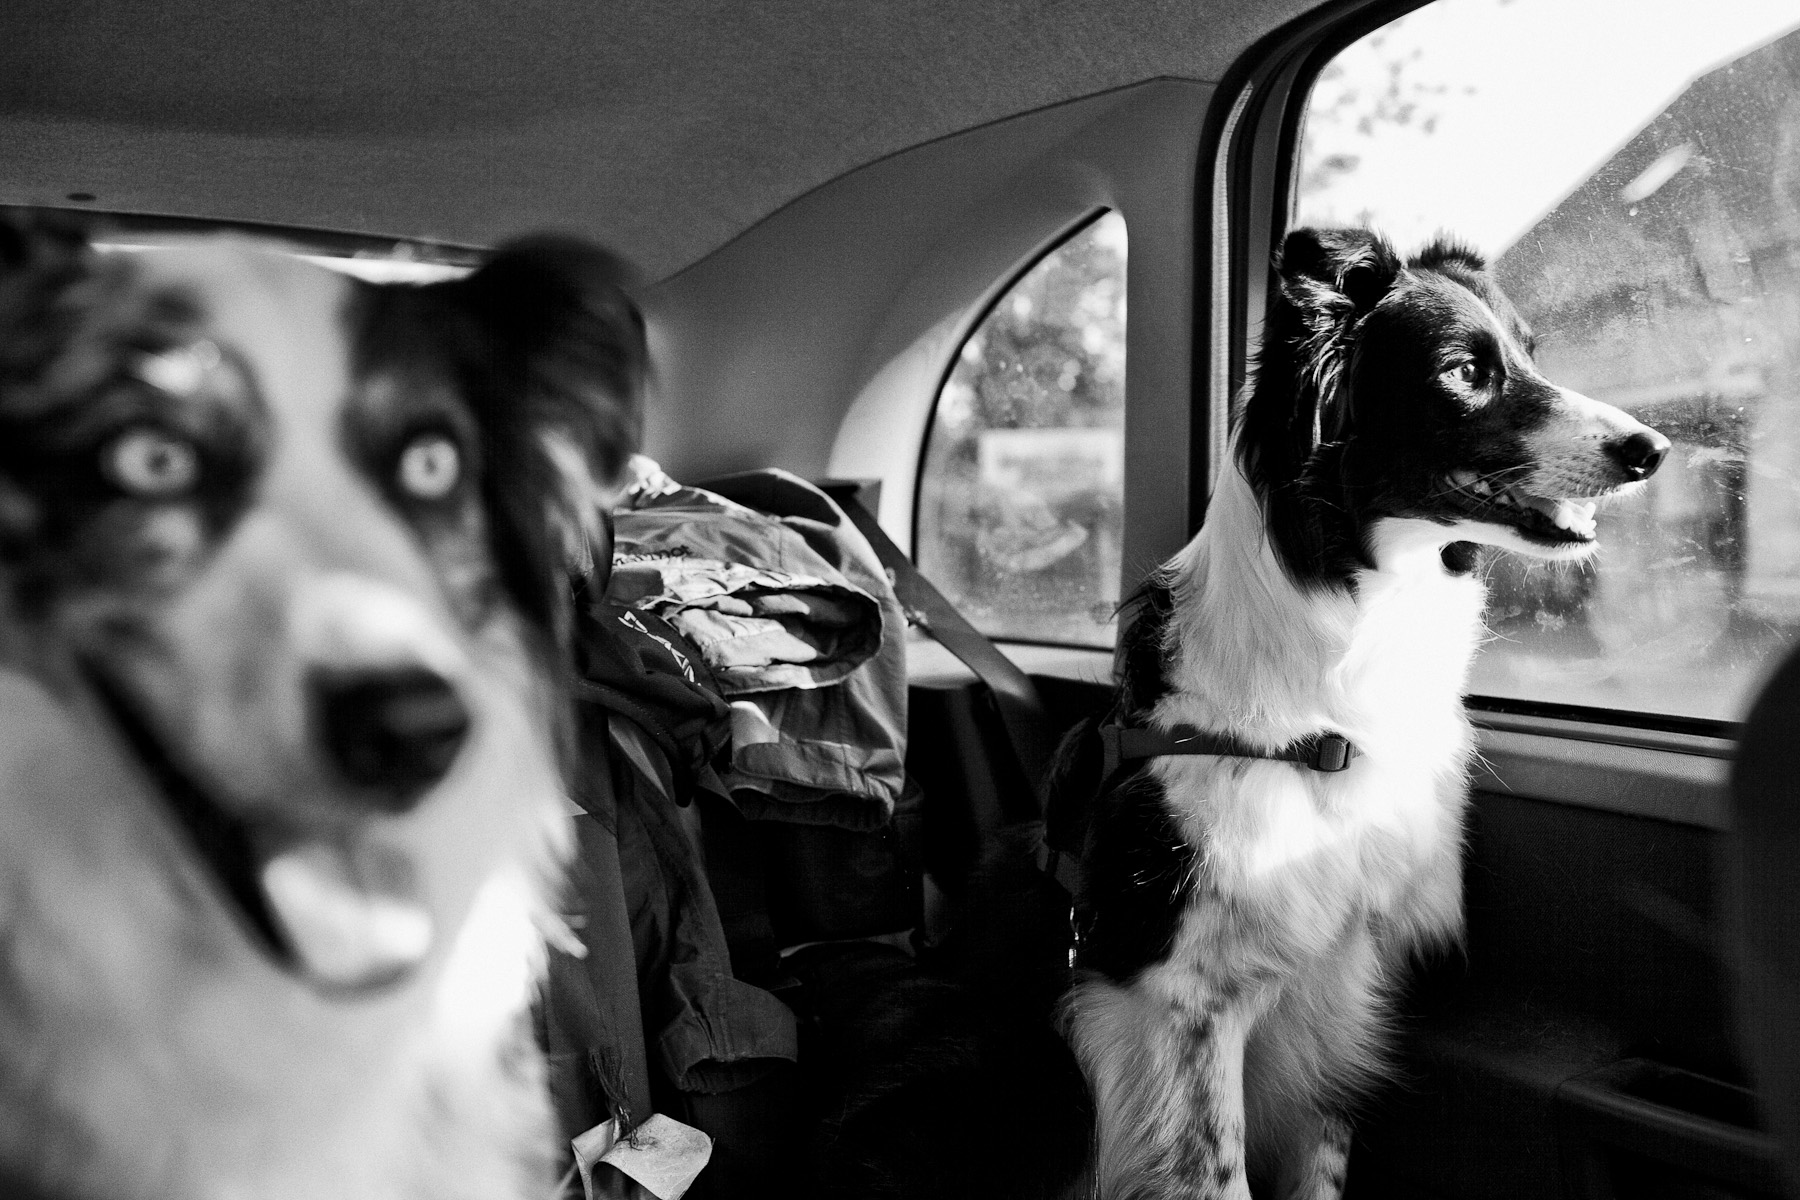 Lyra and Oli watch the passing Czech landscape on their way to a frisbee competition. Lyra still tries to catch a passing car sometimes. June 3, 2011.